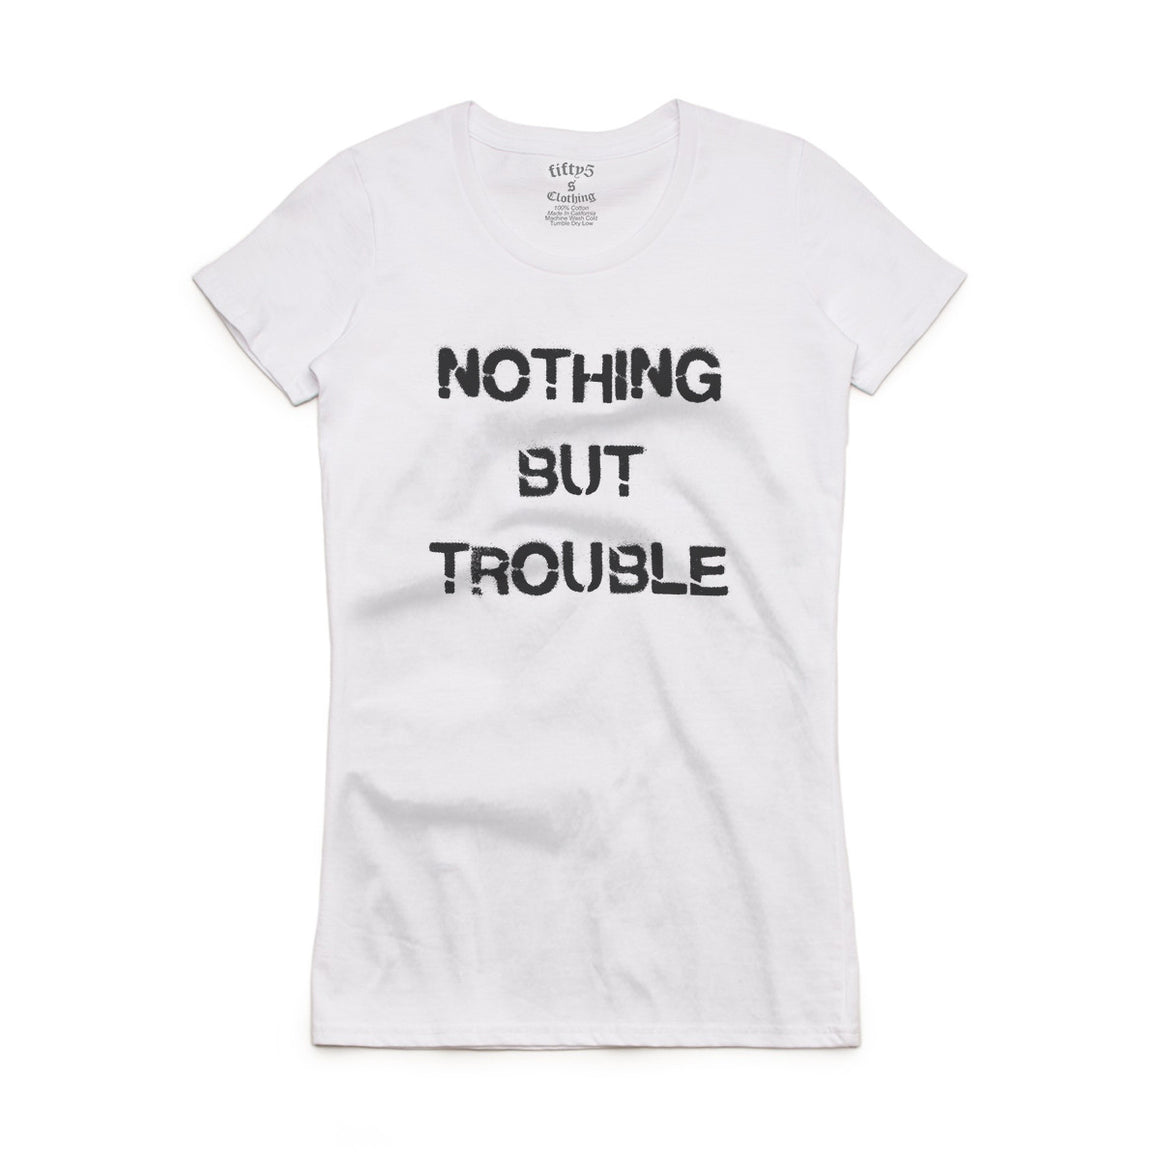 Nothing But Trouble Women's Crew Neck T-Shirt